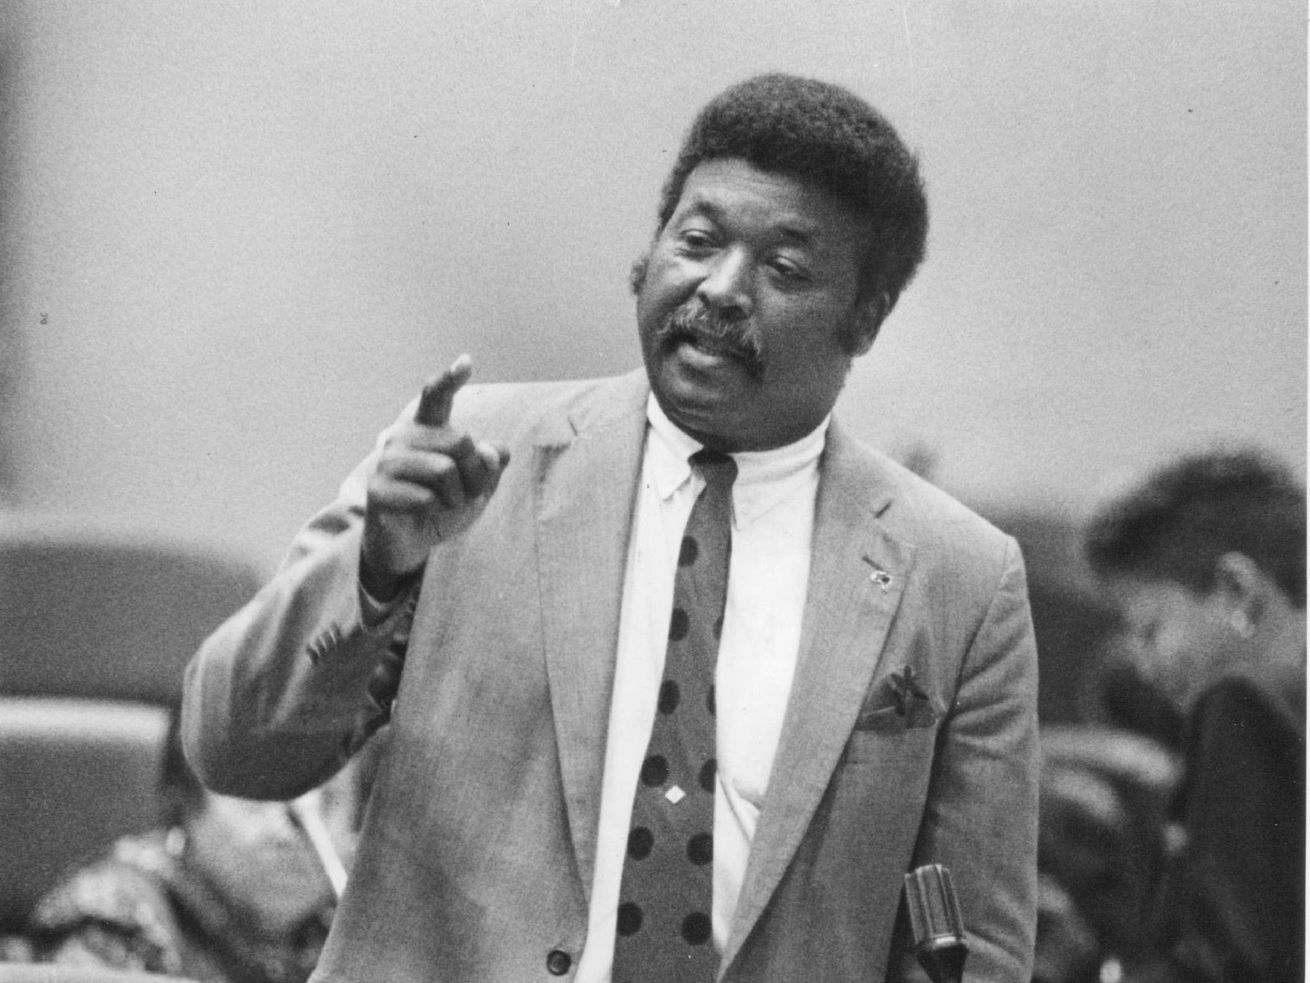 Robert Shaw, former alderman and Cook County commissioner.